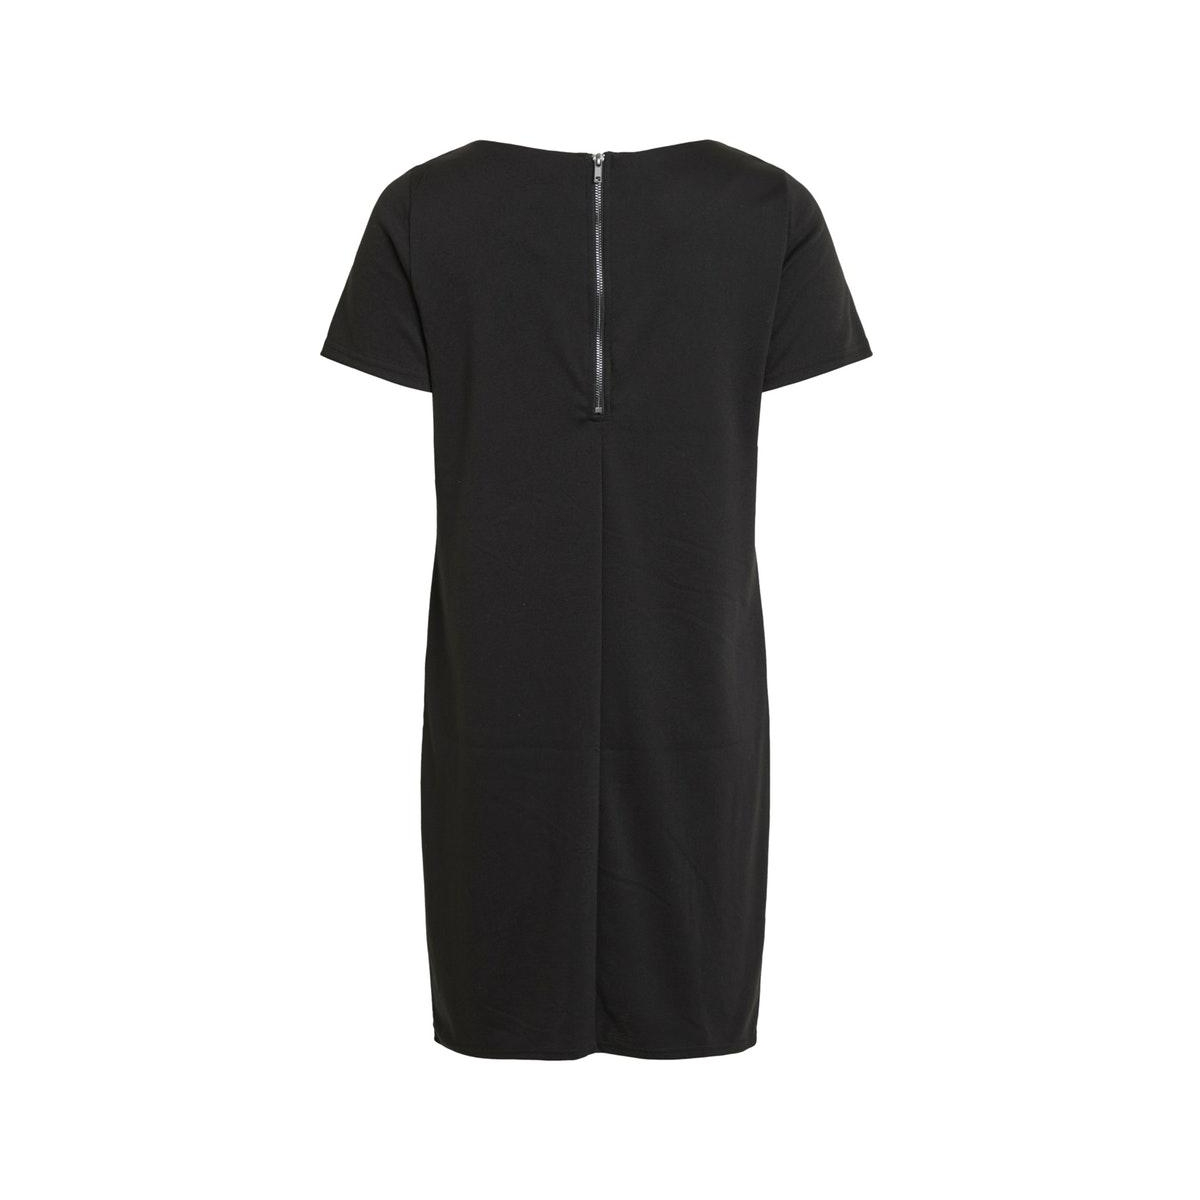 vitinny new s/s dress - fav 14044396 vila jurk black